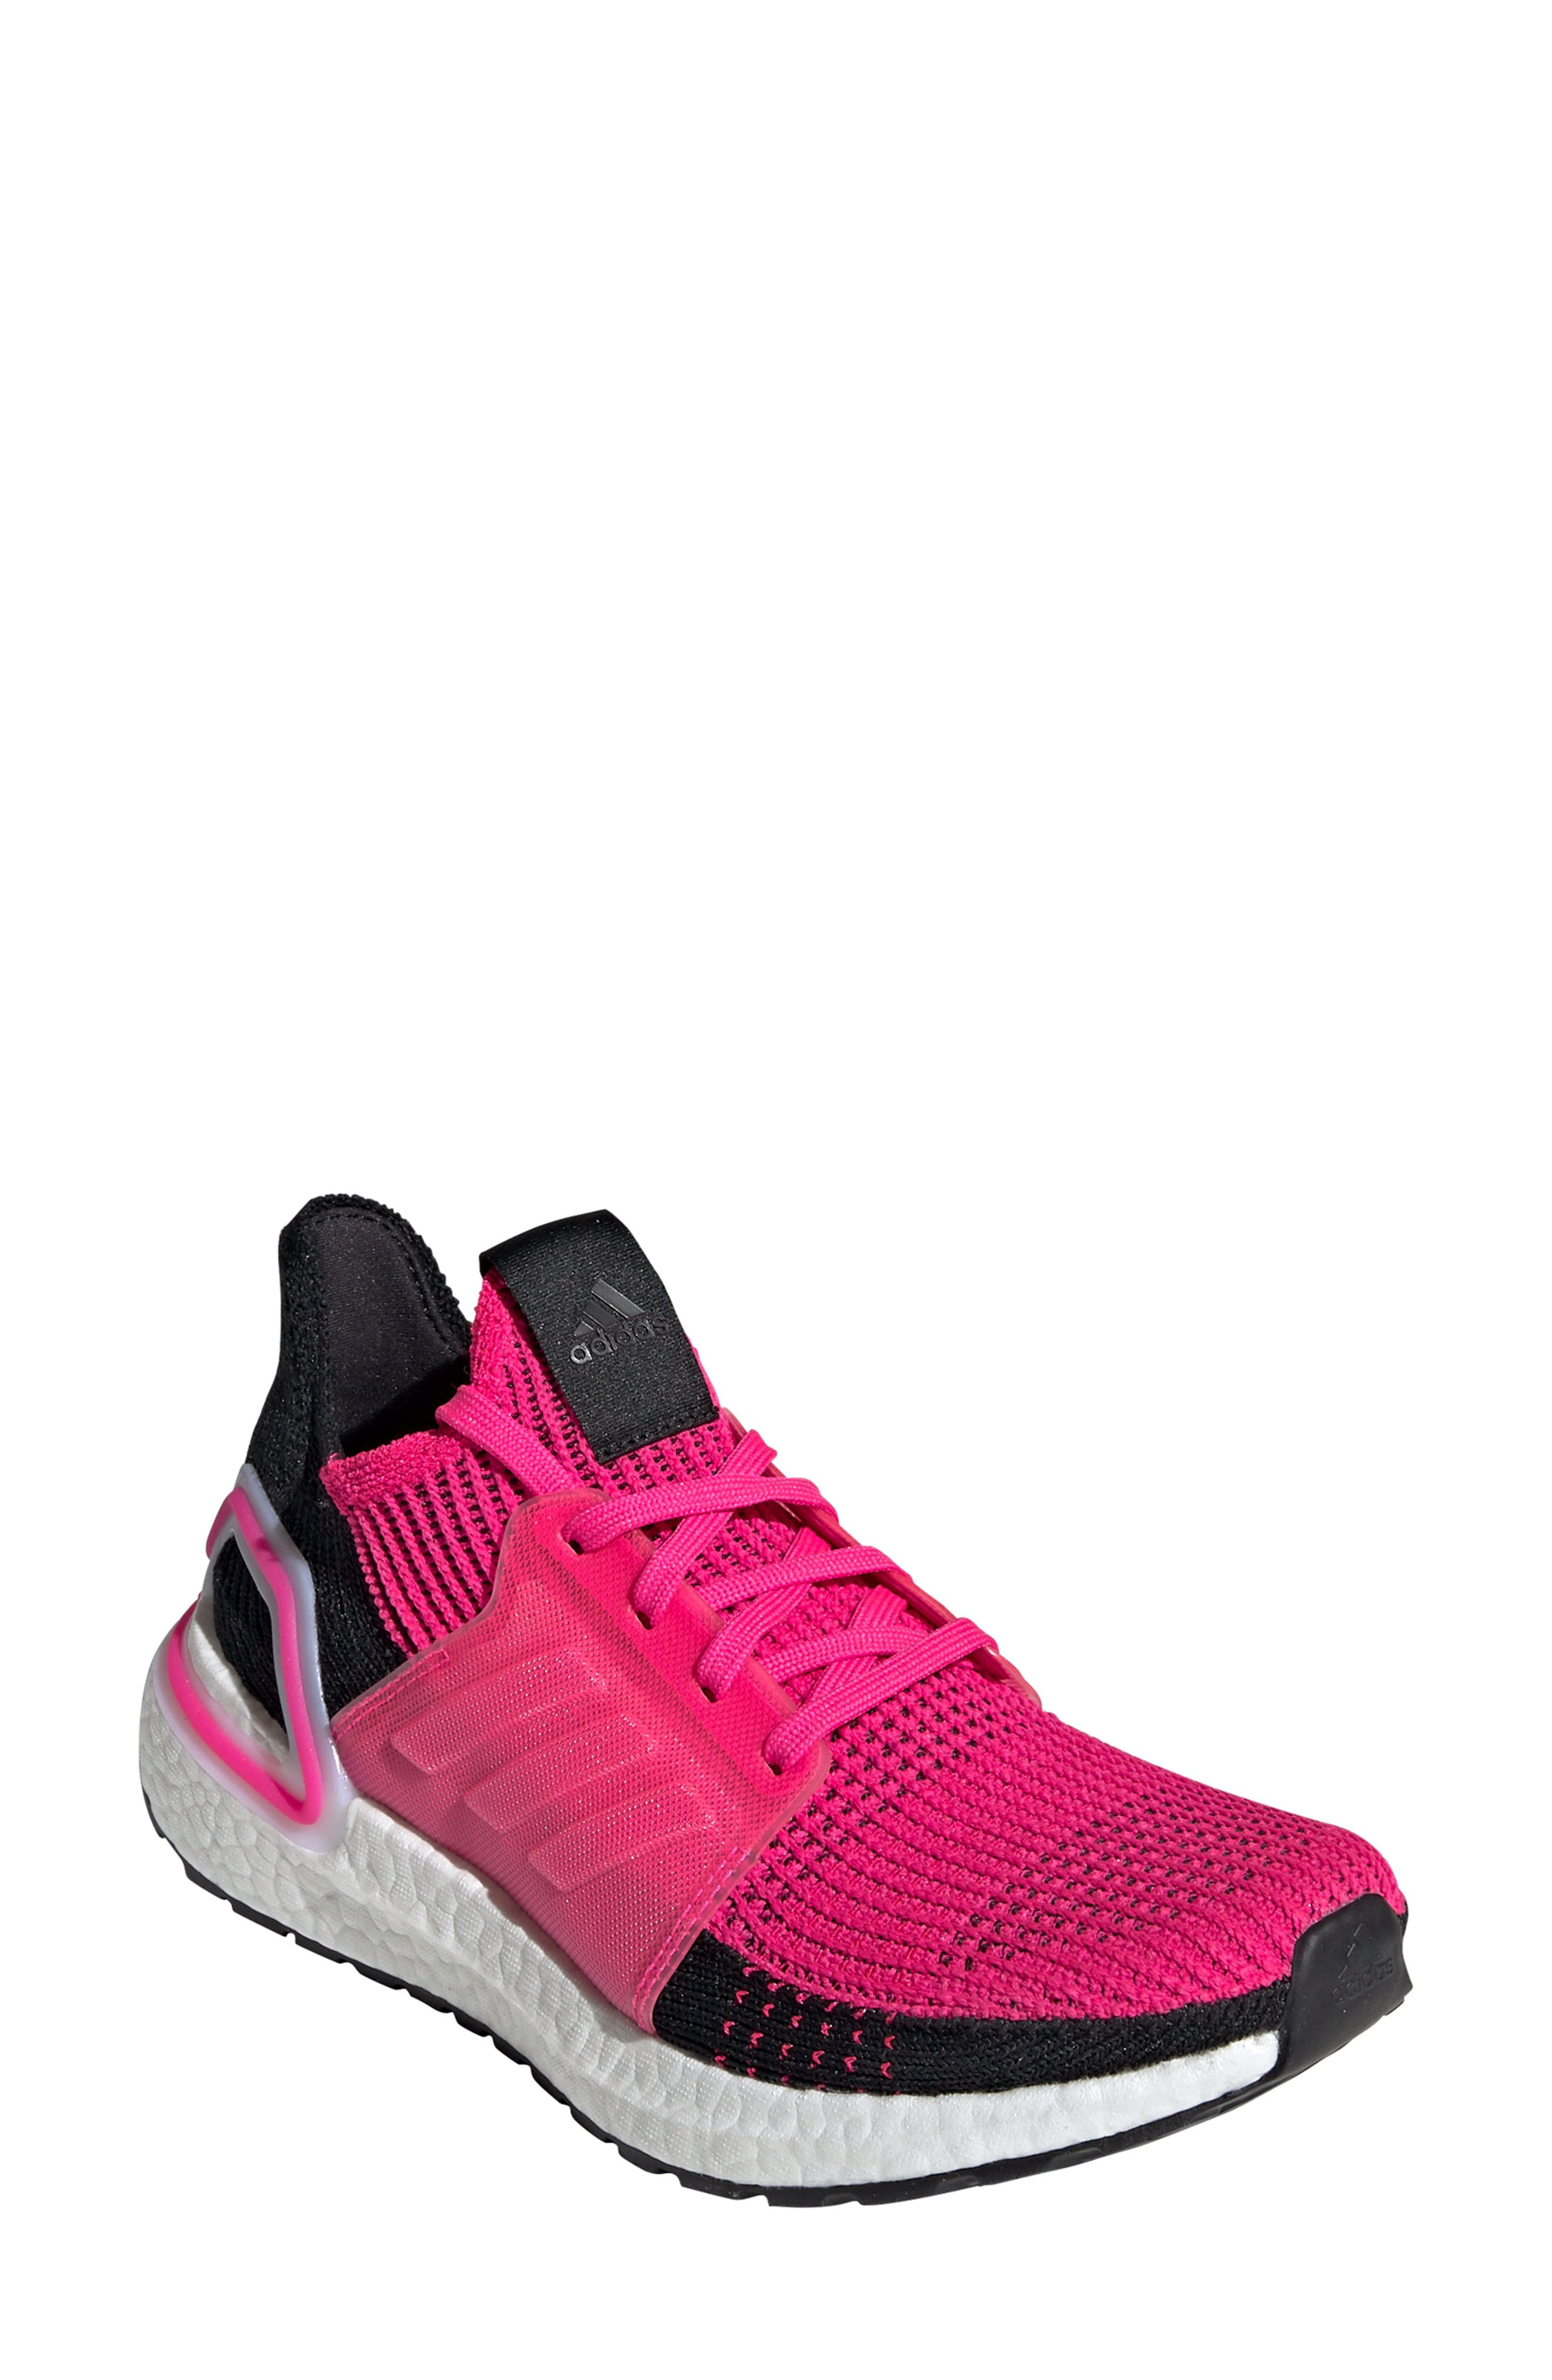 Adidas Performance Women Ultraboost Primeknit Sneakers